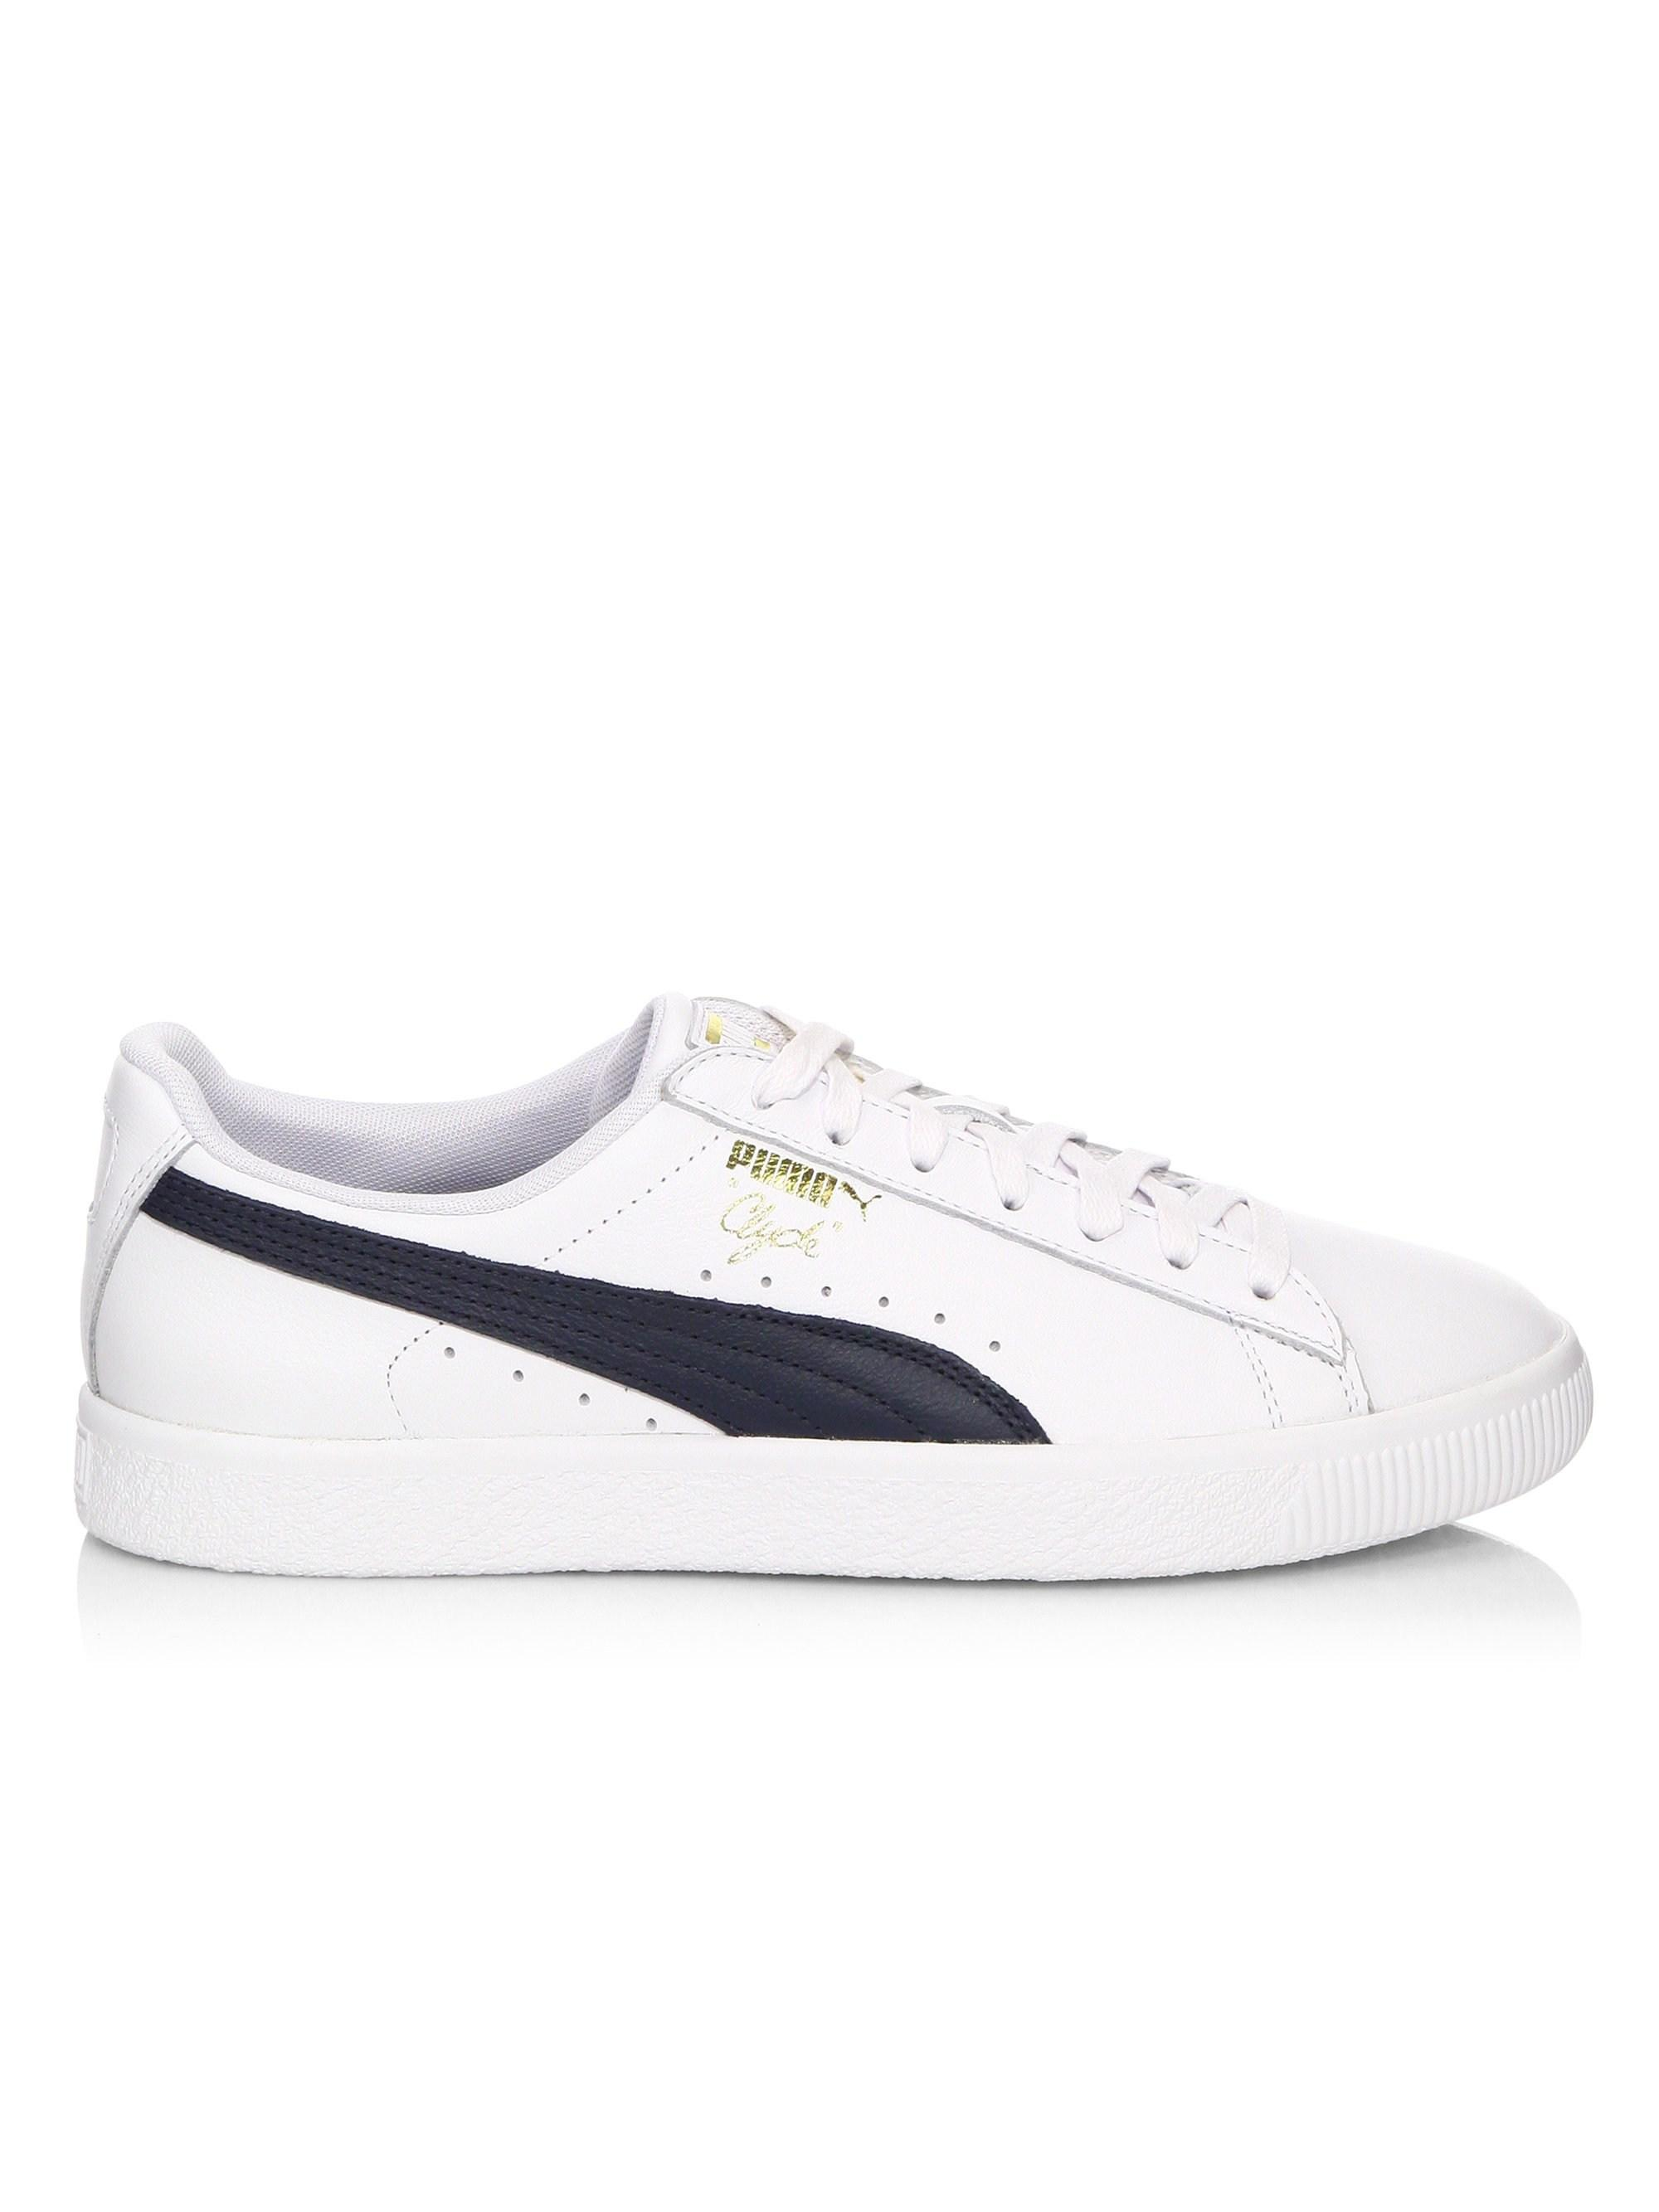 Lyst - PUMA Men s Clyde Core Sneakers - White - Size 9 in White for Men c02087958